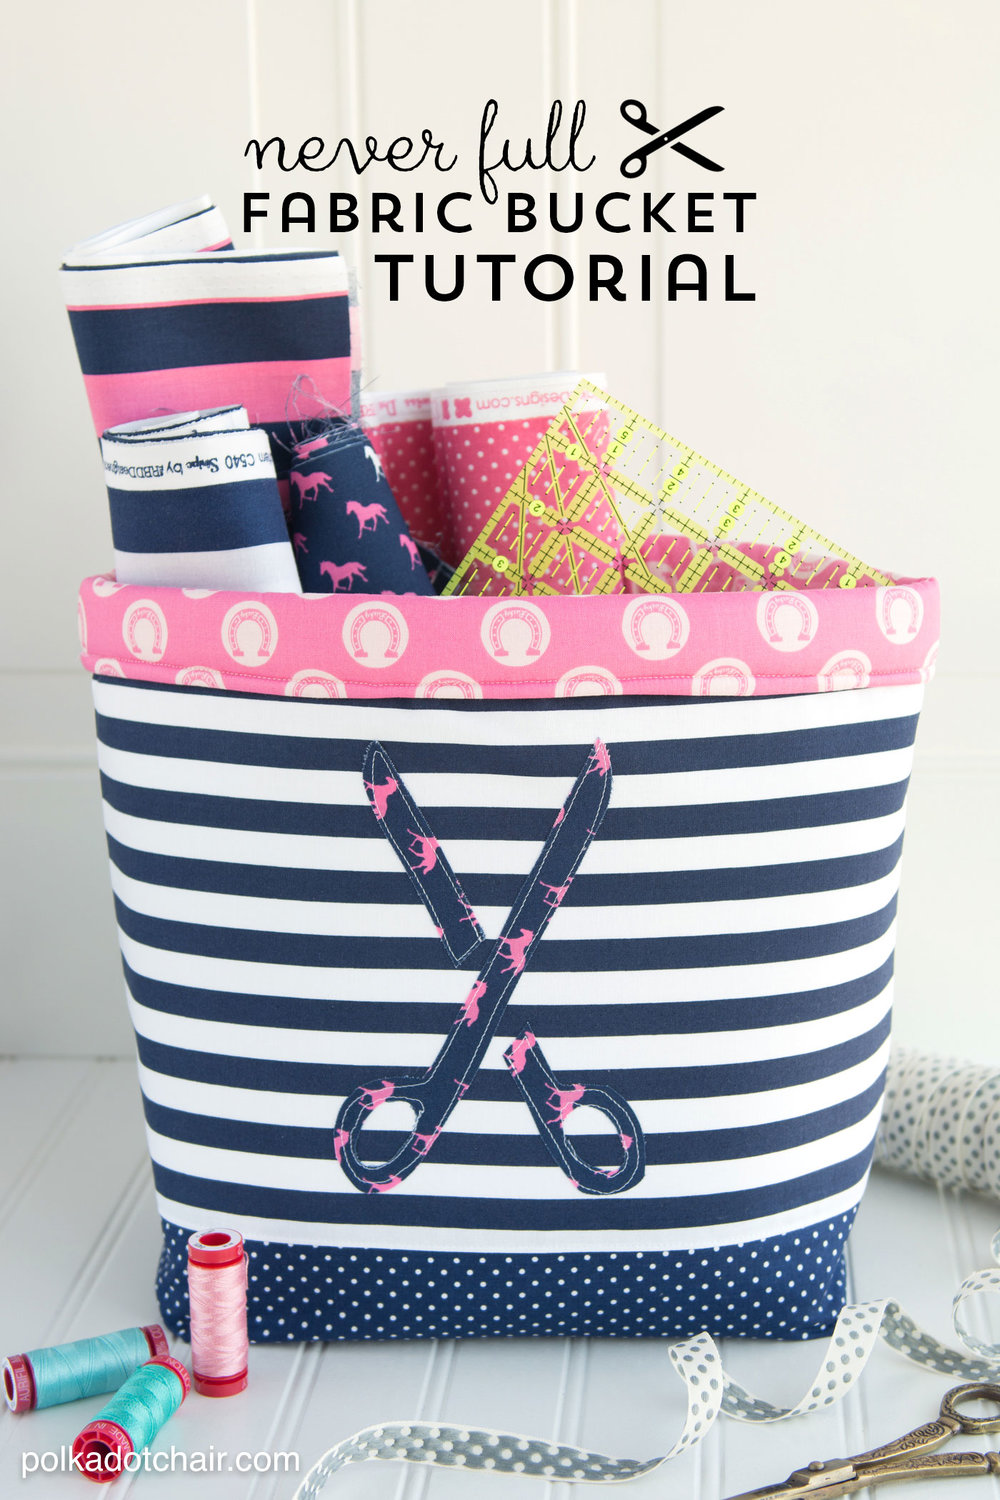 FABRIC BASKET TUTORIAL from Polka Dot Chair